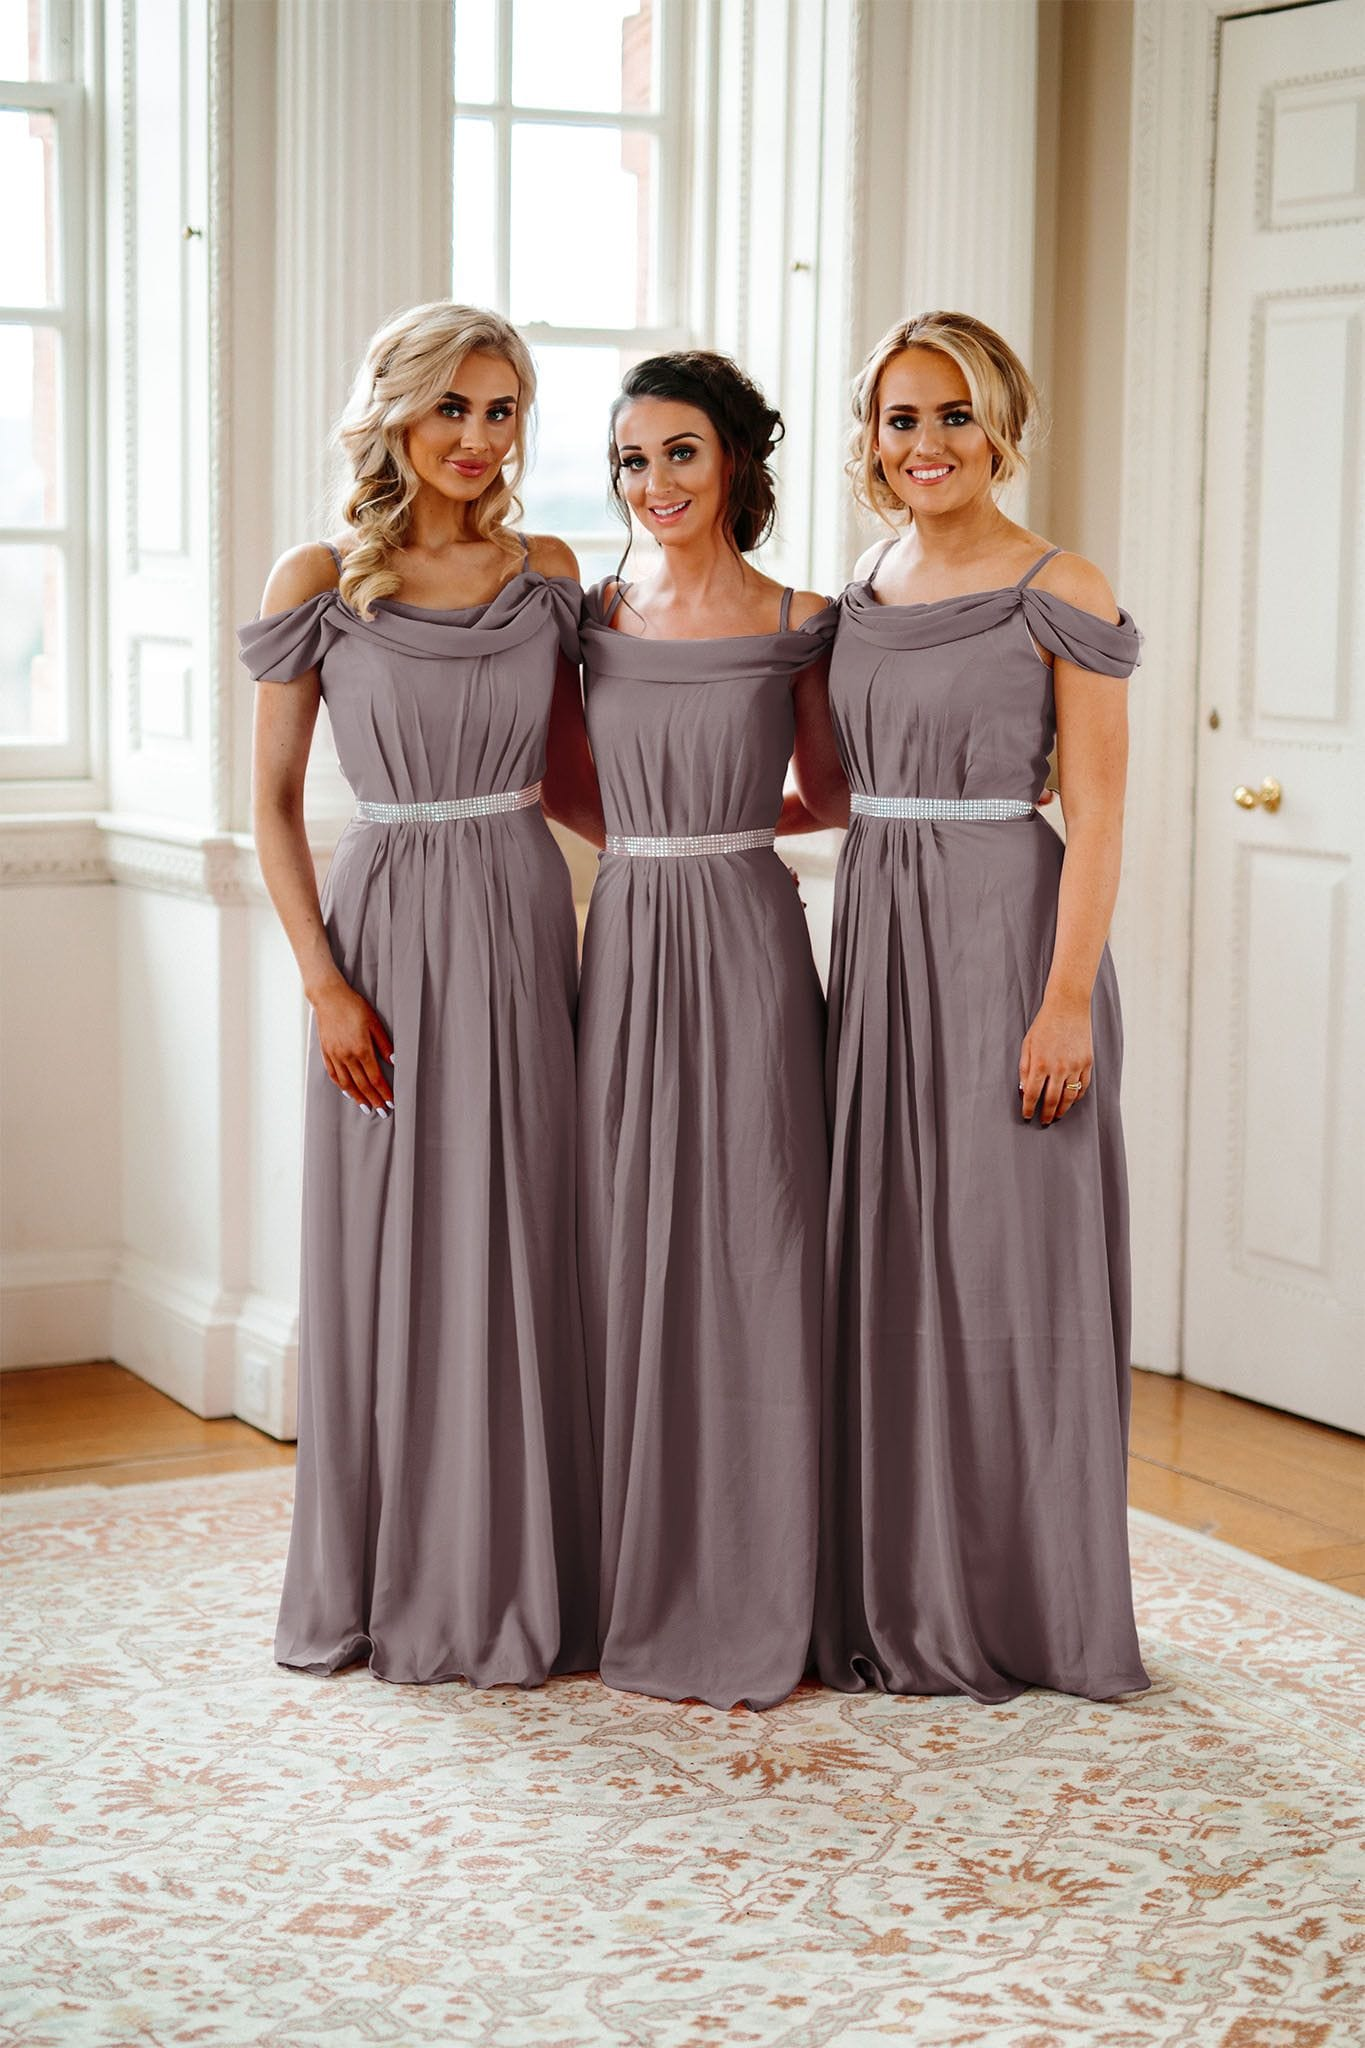 Abigail Off Shoulder Bridesmaid Dress With Diamante Belt - That Special Day Bridal Warehouse